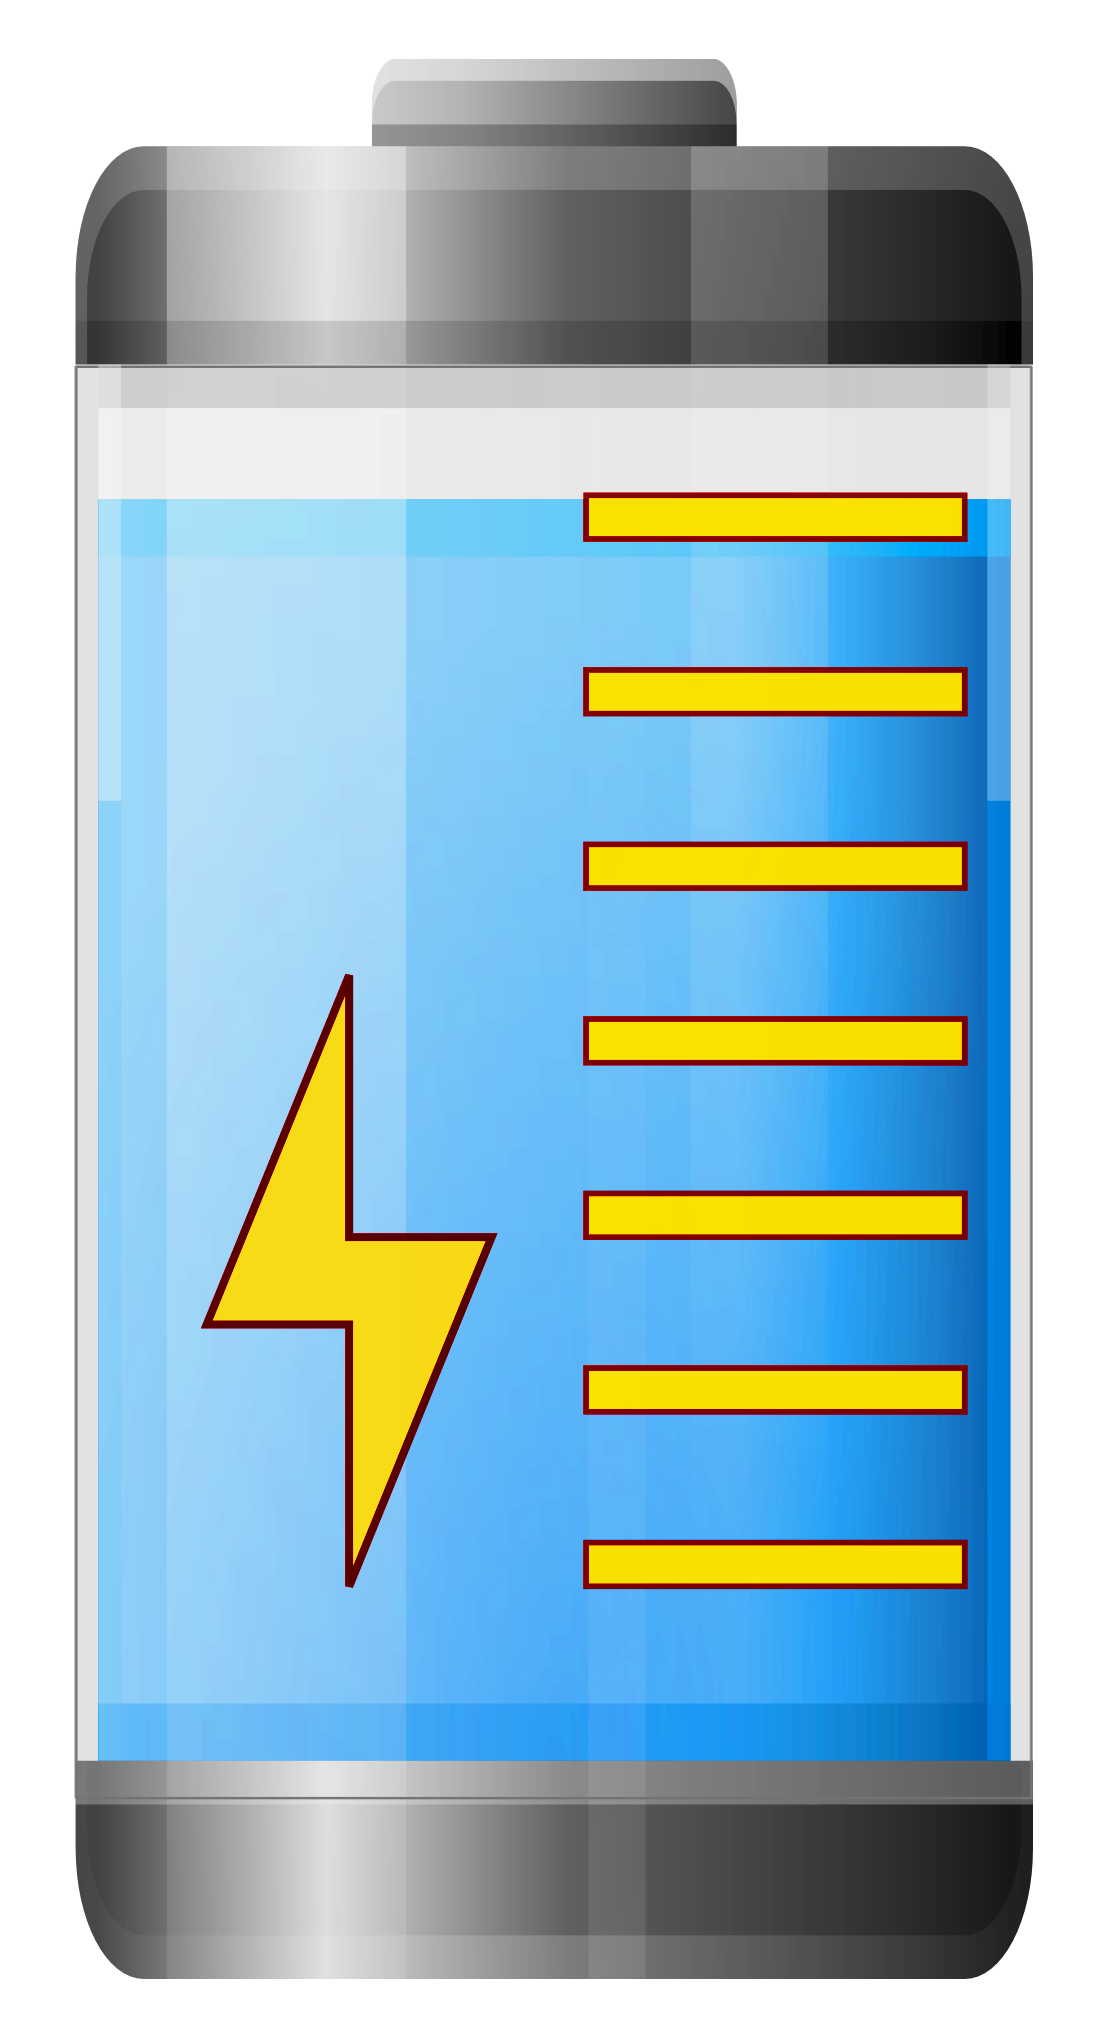 Battery charging png image. Energy clipart transparent